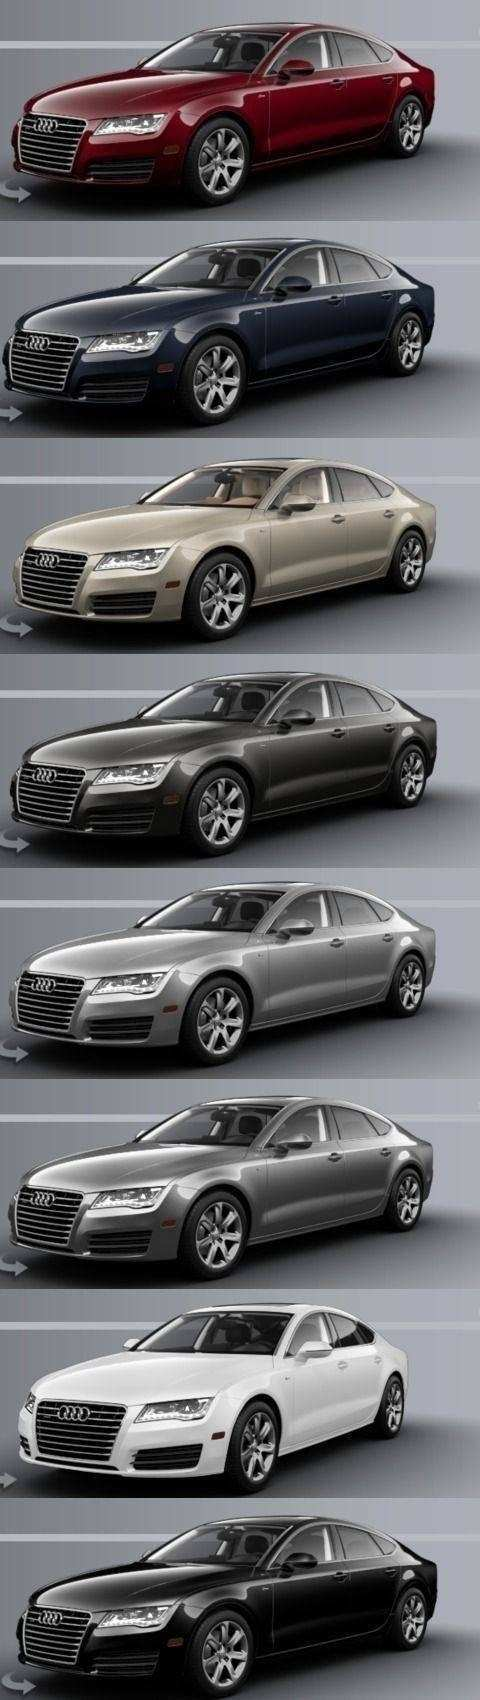 31 All New 2019 Audi A7 Colors Redesign And Concept